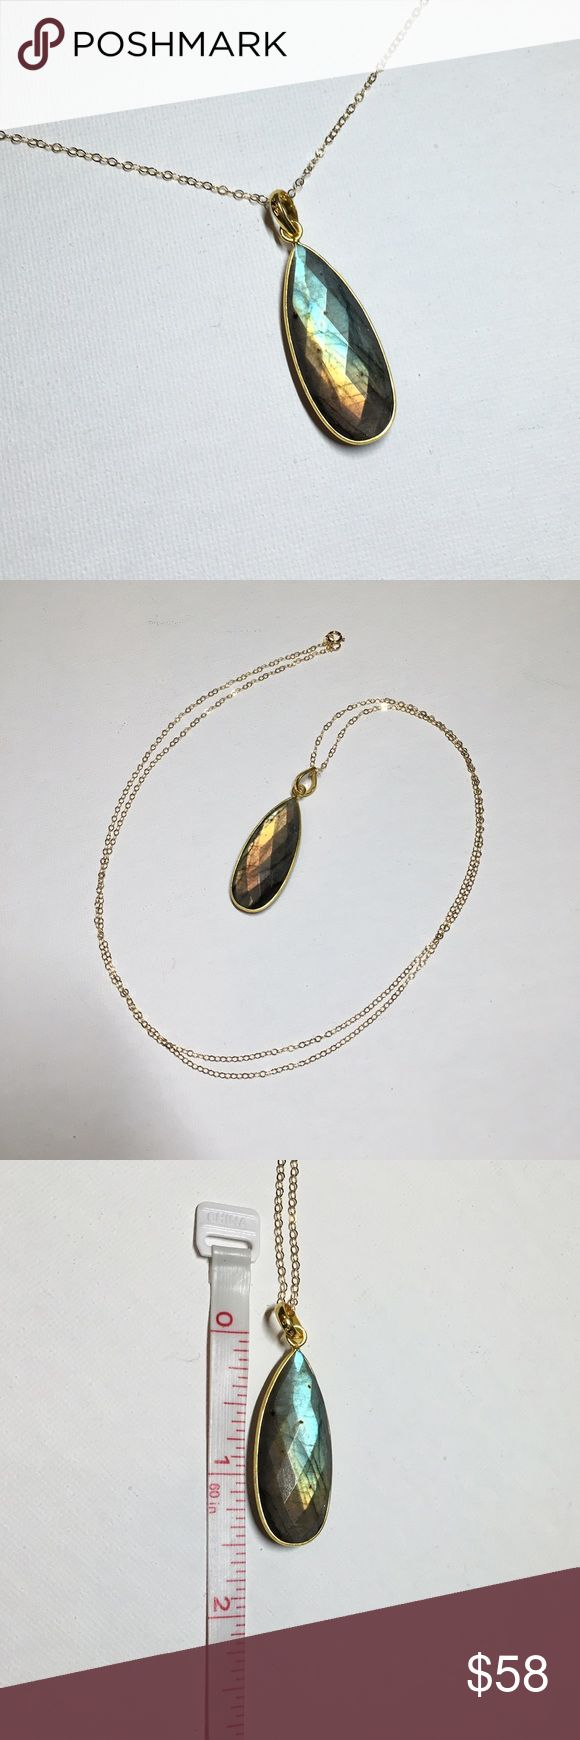 """Long Labradorite Teardrop Necklace in Gold Vermeil Large (~16x37mm) Labradorite teardrop wrapped in Sterling silver, then dipped in gold vermeil, dangling from a gold filled 30"""" chain. Labradorite is one of my favorite natural stones because it looks gray at some angles, but has a metallic Schiller (labradorescence) on both sides. There are 3 necklaces available and I will try to replace the photos after each one sells so that you can see the exact necklace you'll receive. Each one was hand…"""